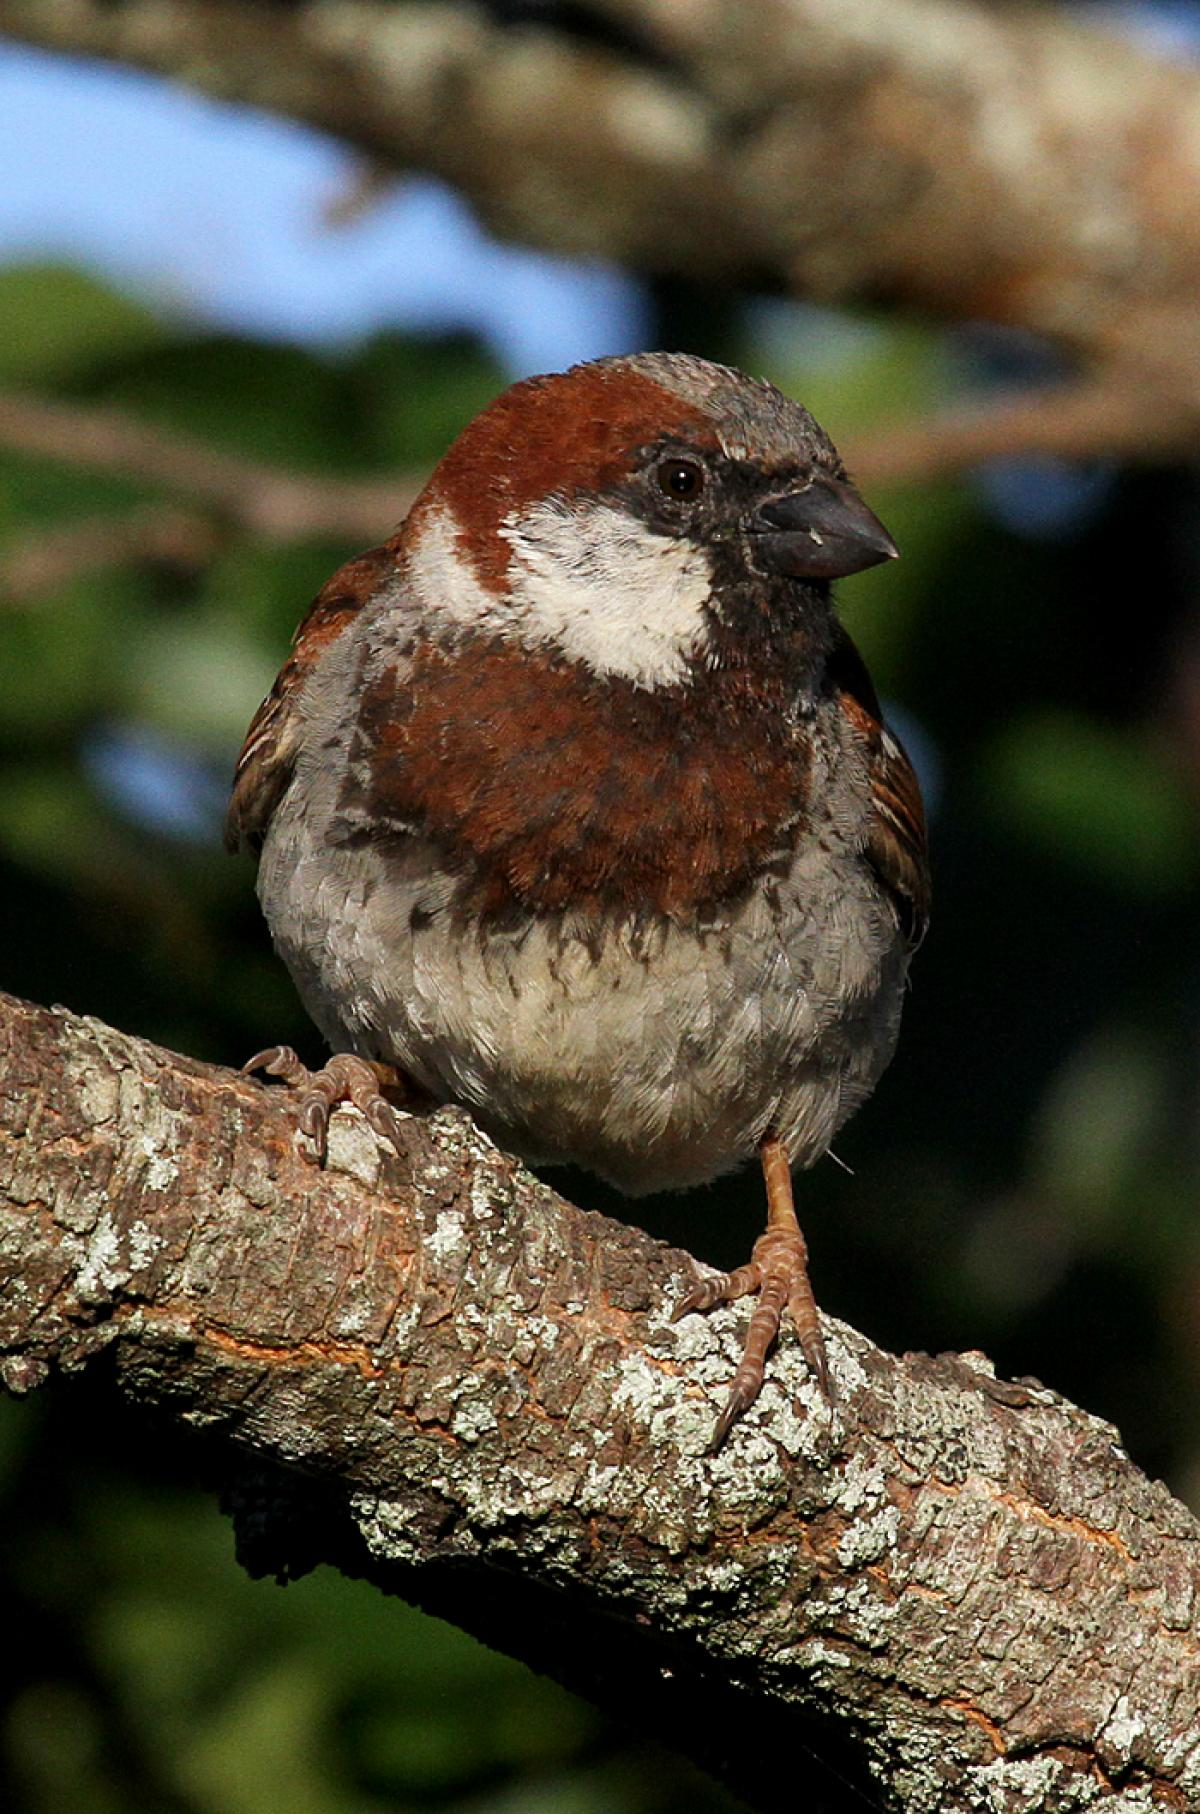 http://nzbirdsonline.org.nz/sites/all/files/1200599IMG_4201.JPG